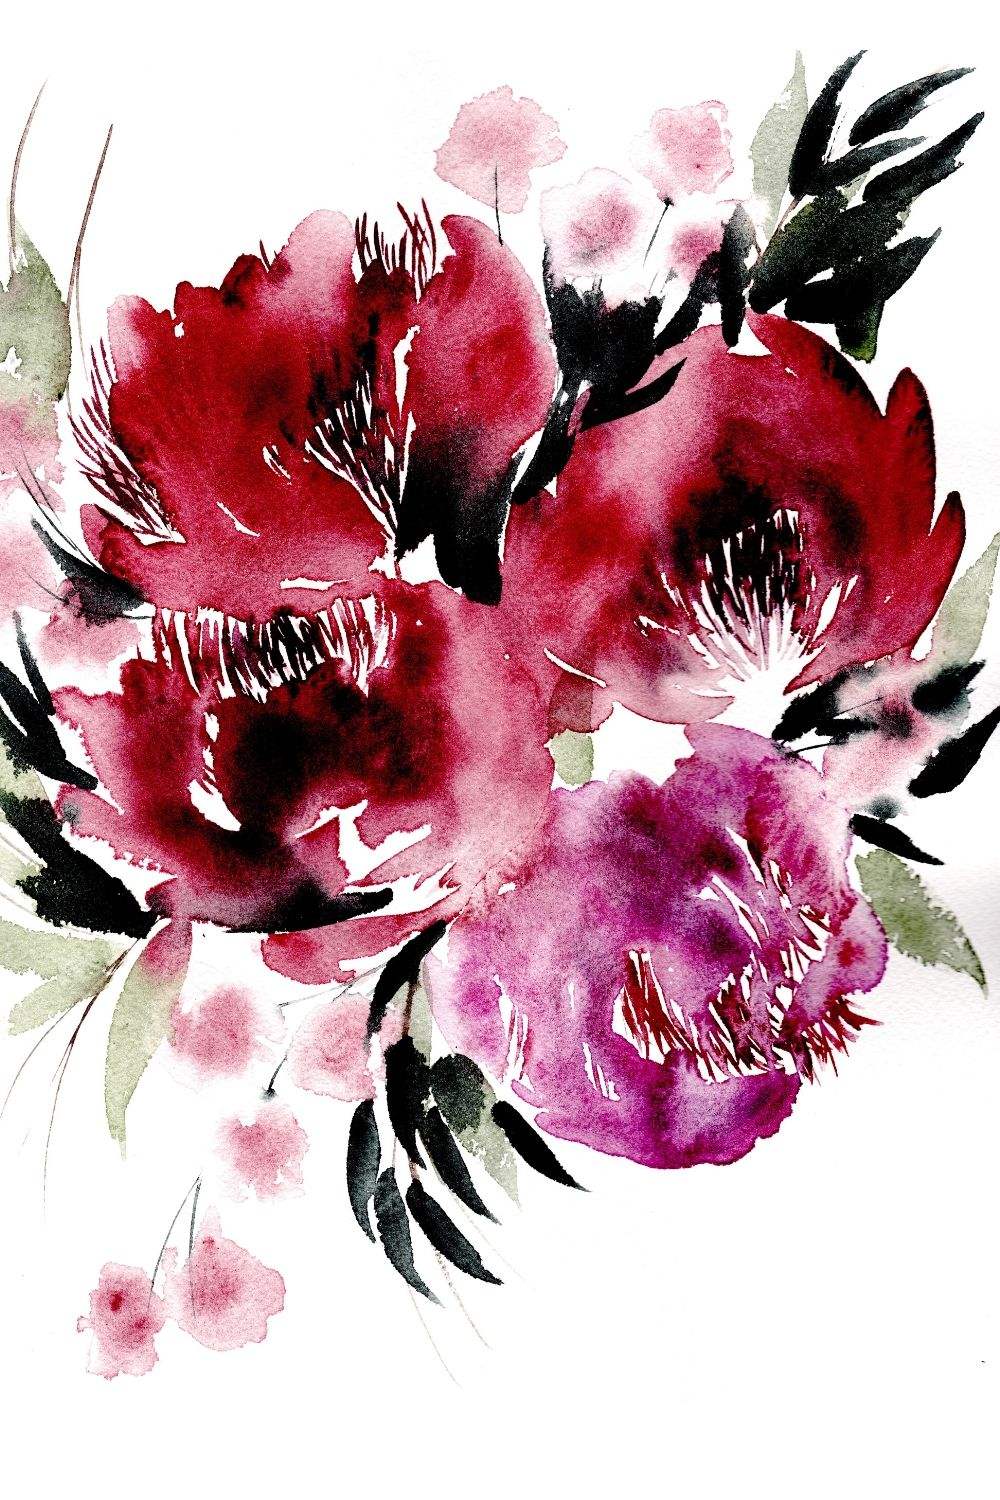 Large loose watercolour flower illustrations with magenta and red